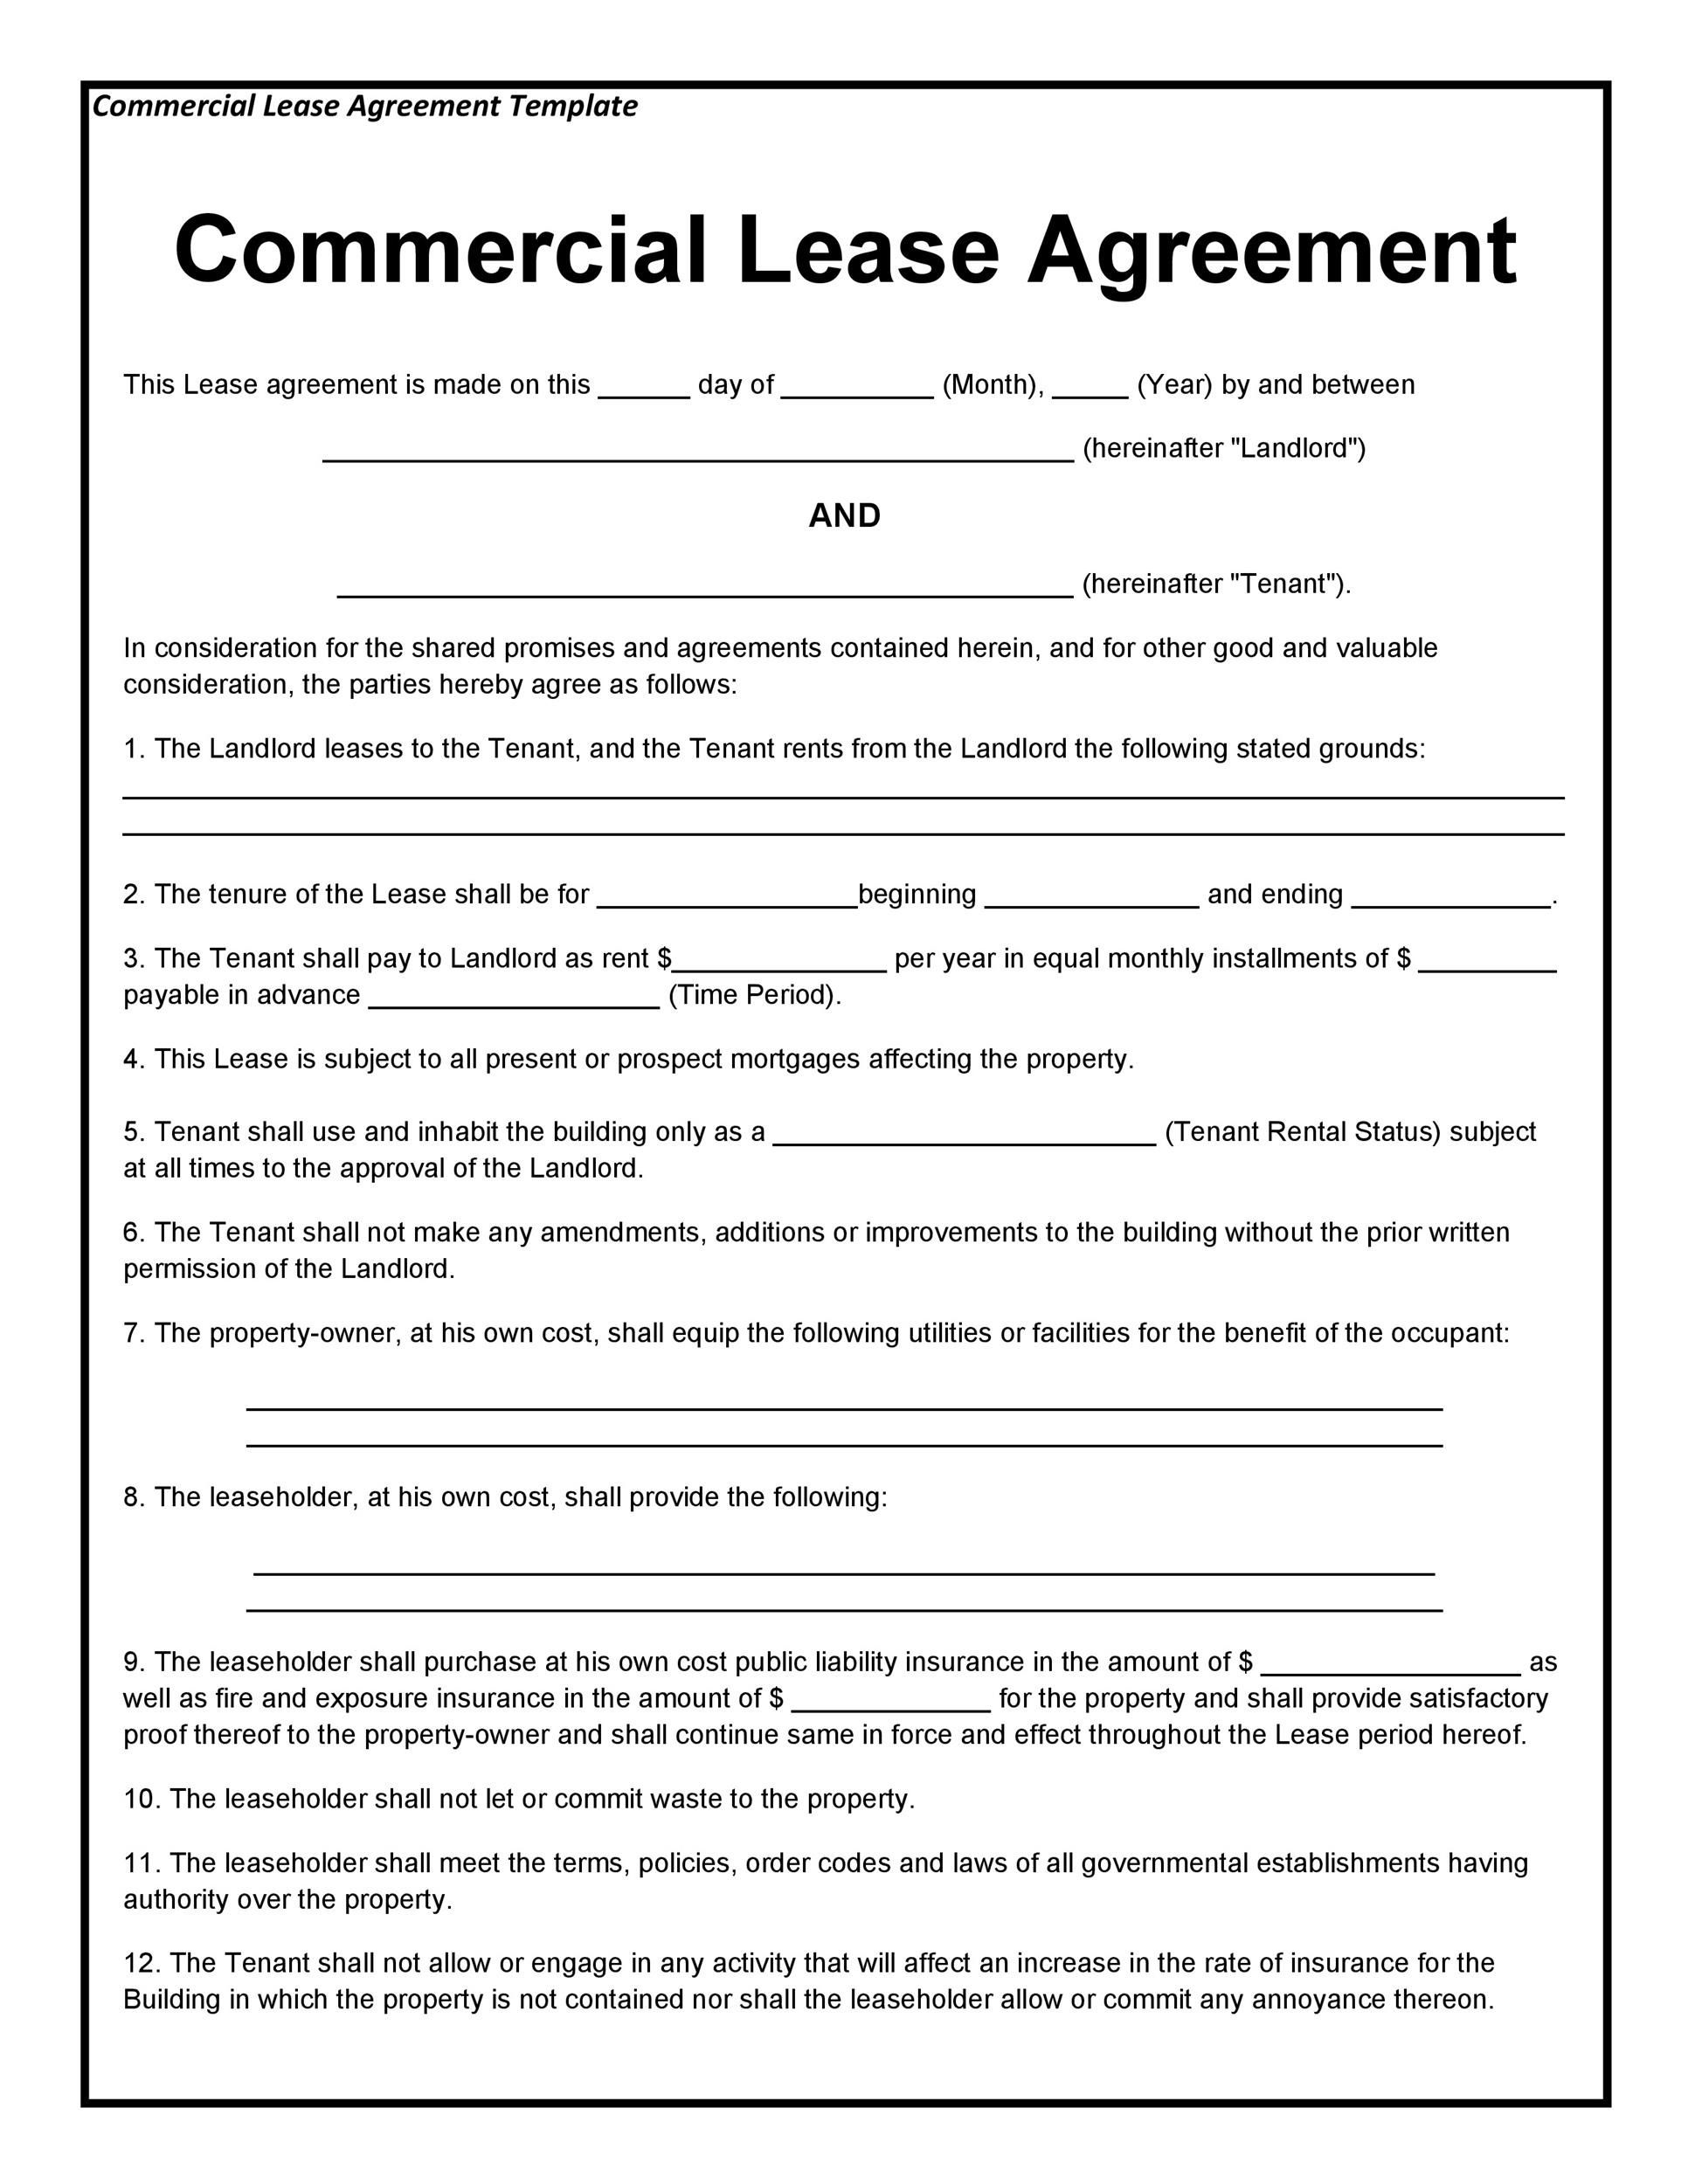 004 Unique Land Lease Agreement Template Image  Templates Uk Farm FreeFull